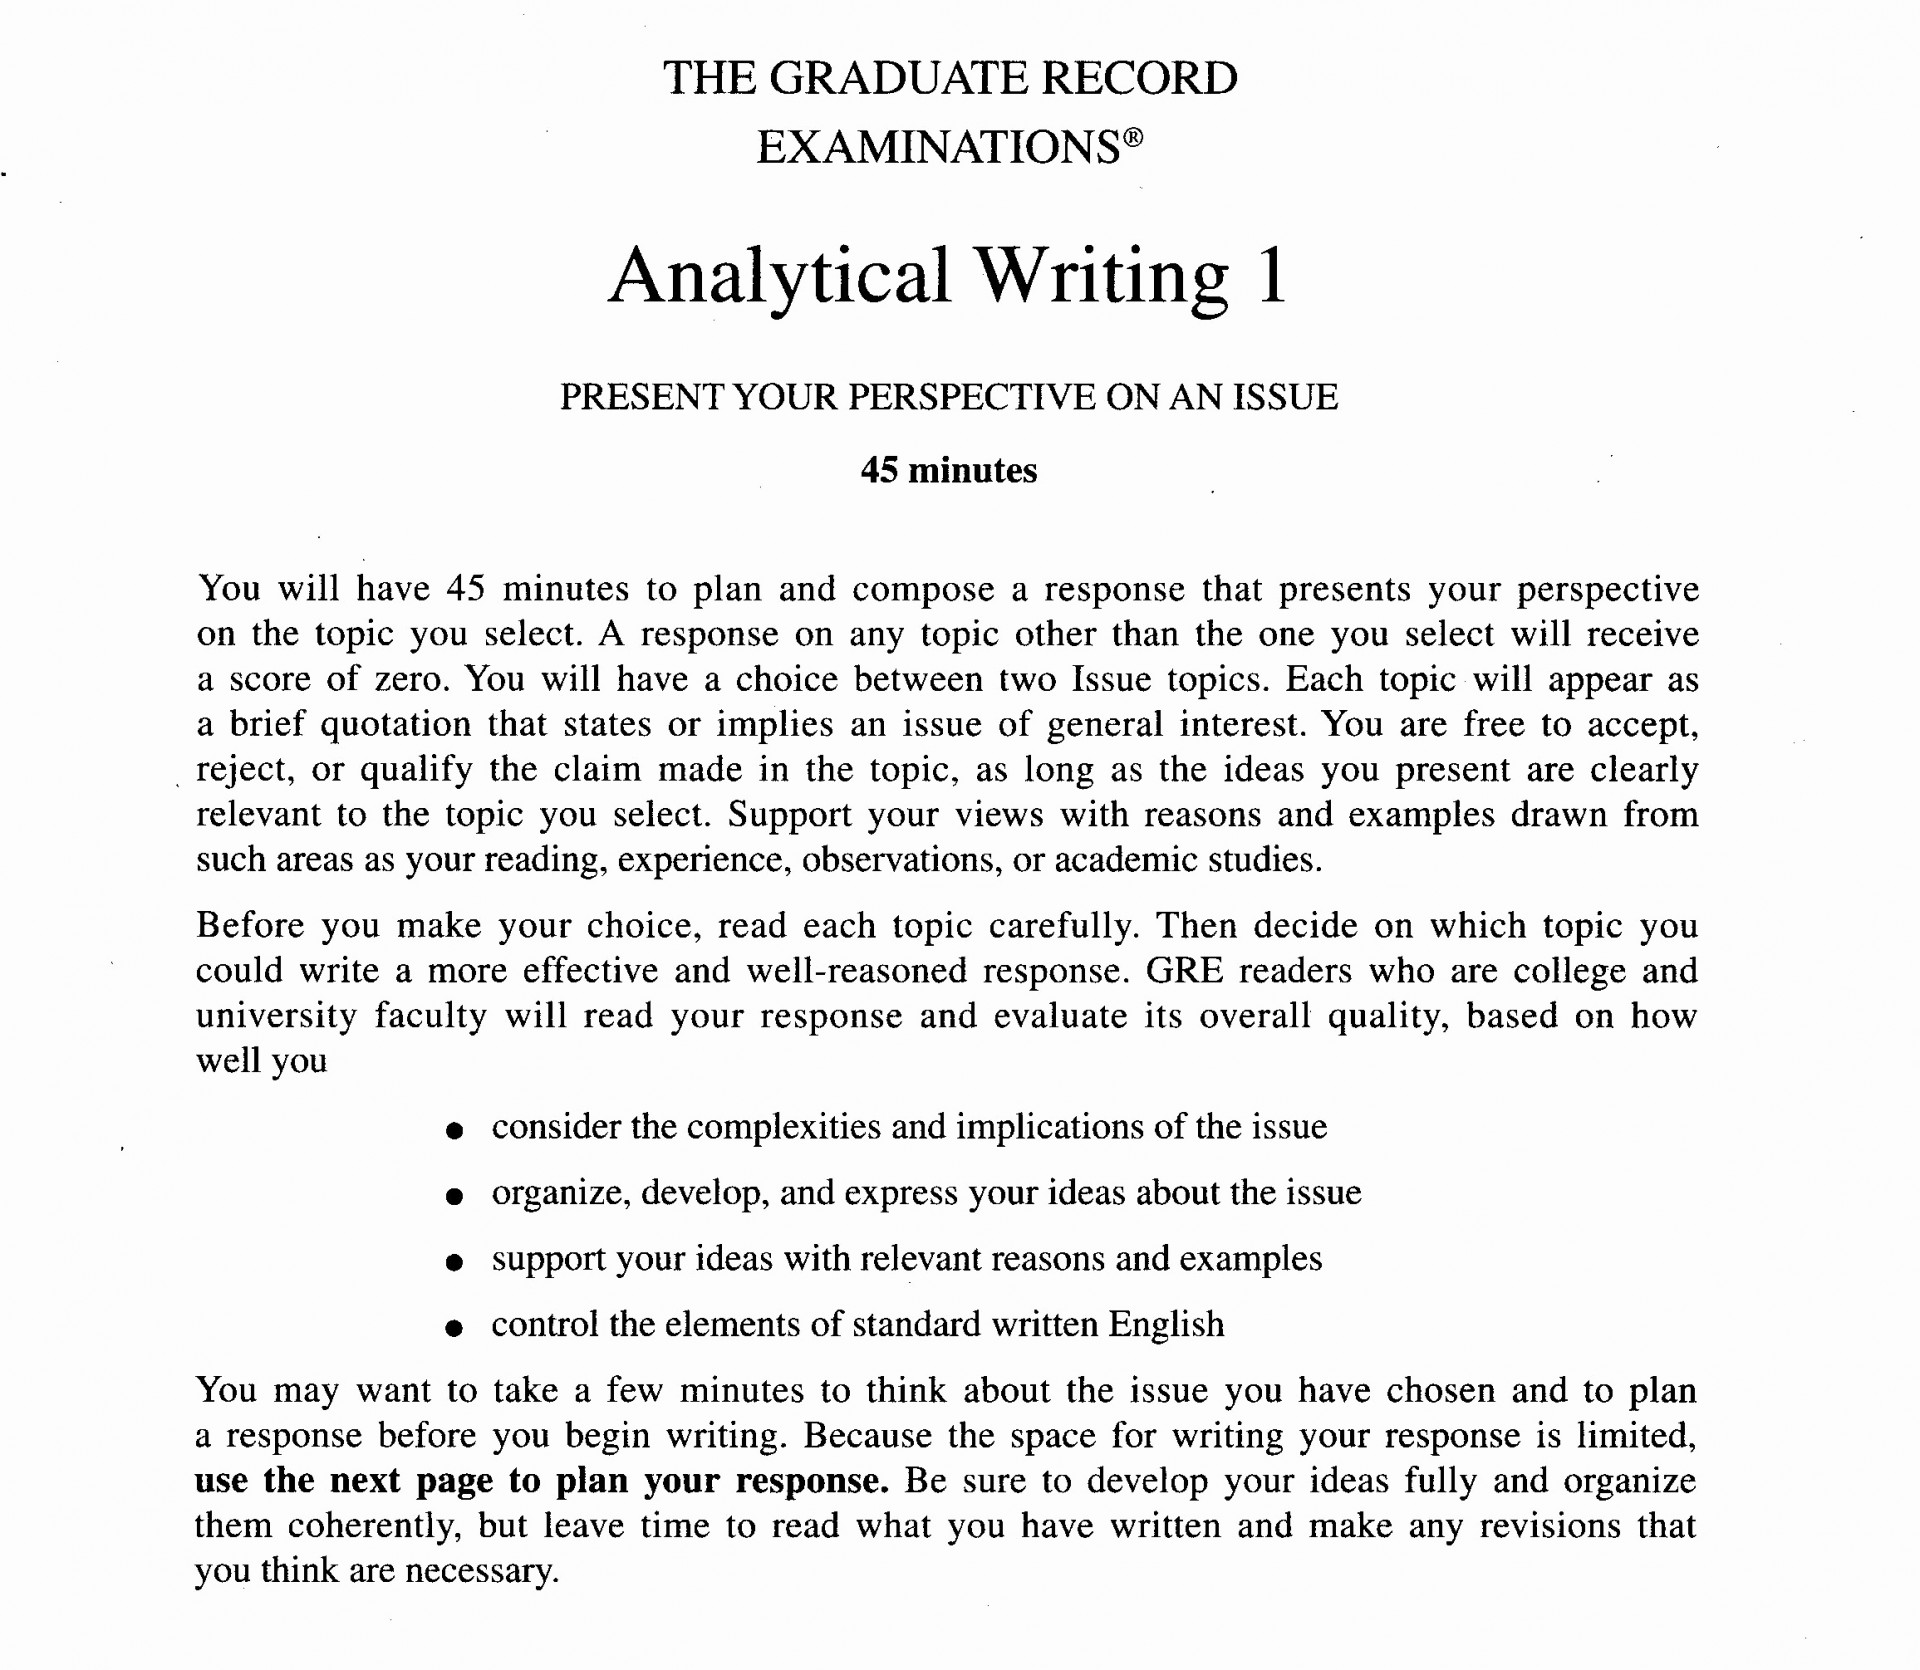 020 Interview Narrative Examples Inspirational Argument Analysis Essay Gre Sample Of Example Sensational Samples Ets Analytical Writing Solution 1920